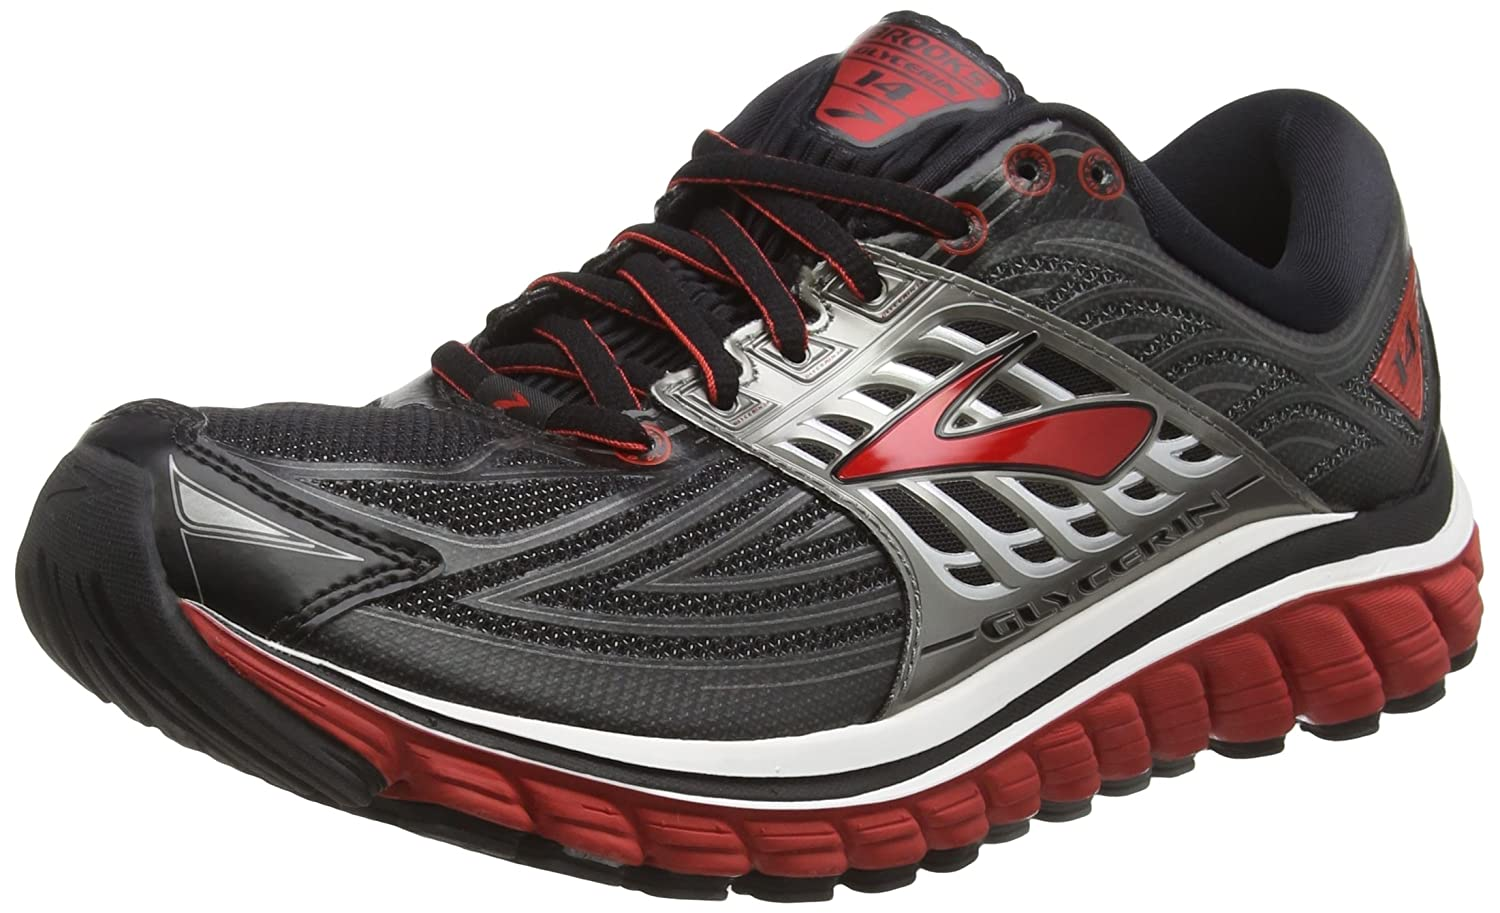 Brooks Glycerin 14, Chaussures de Running Homme, Gris (Black/Highriskred/Anthracite), 46.5 EU